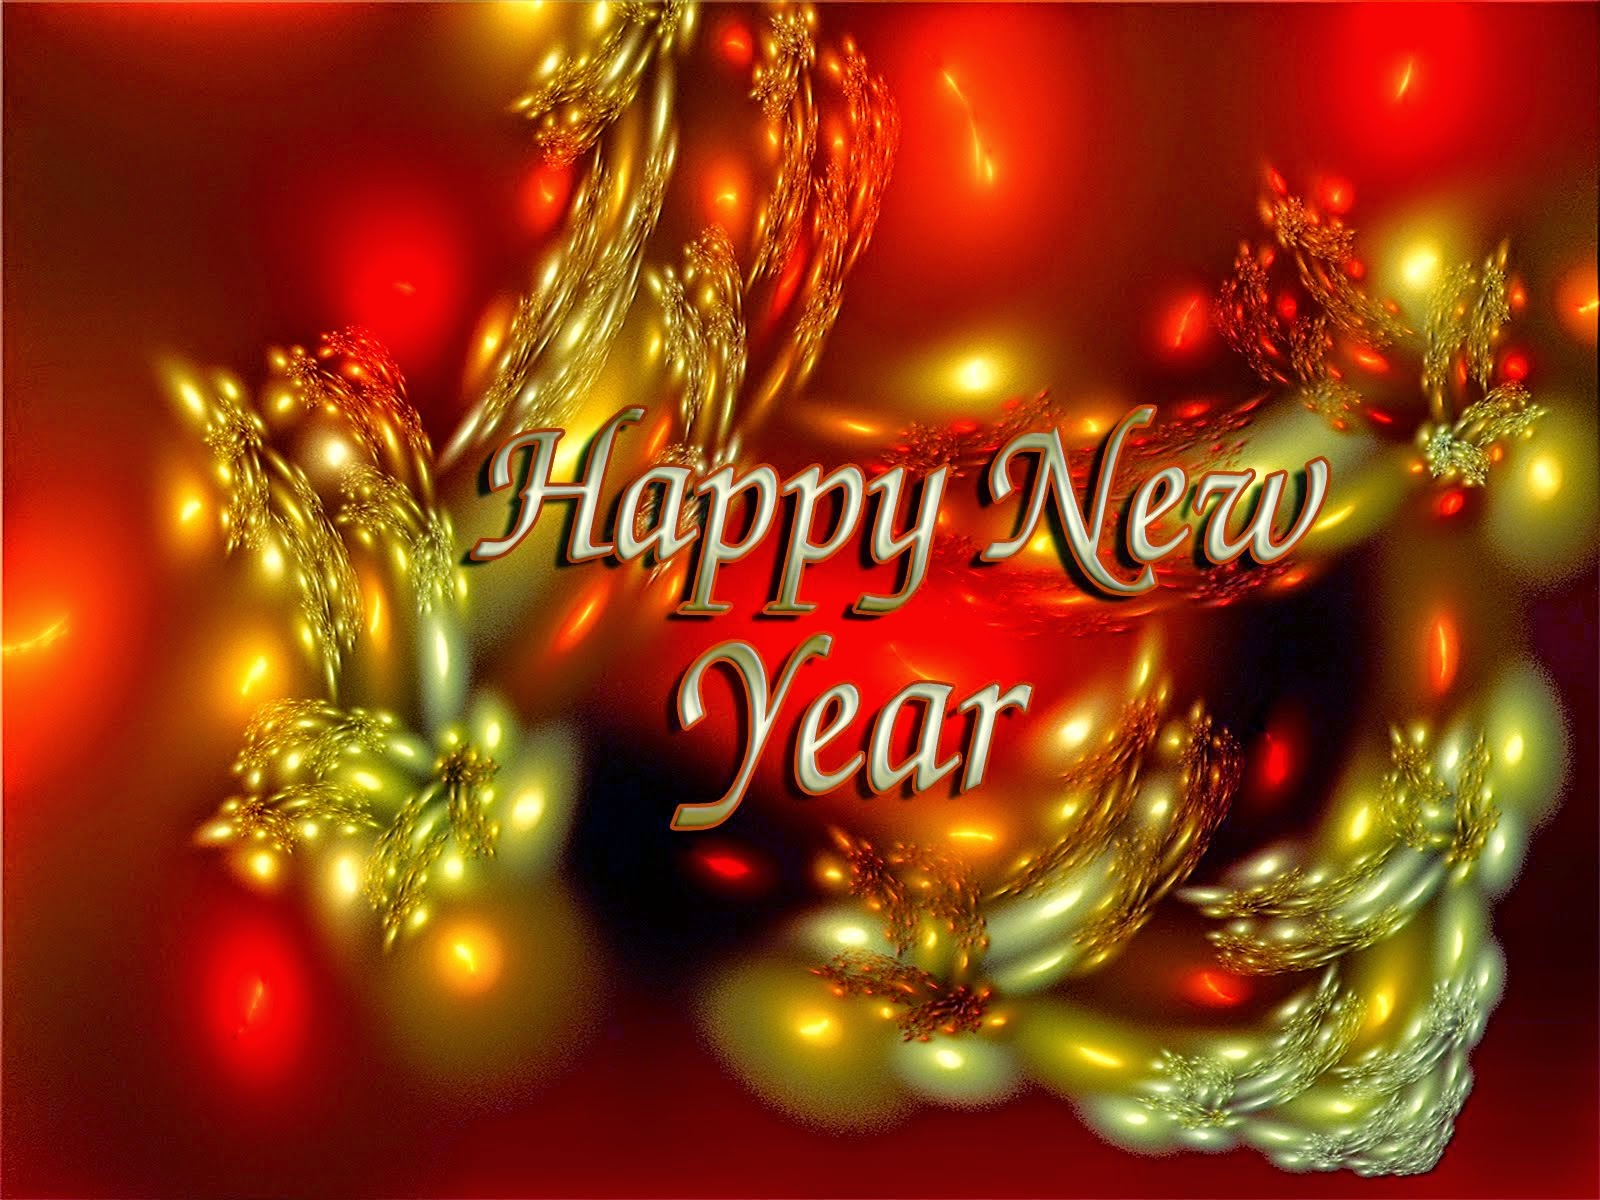 Happy new year 2017 one liner SMS, Quotes wishes